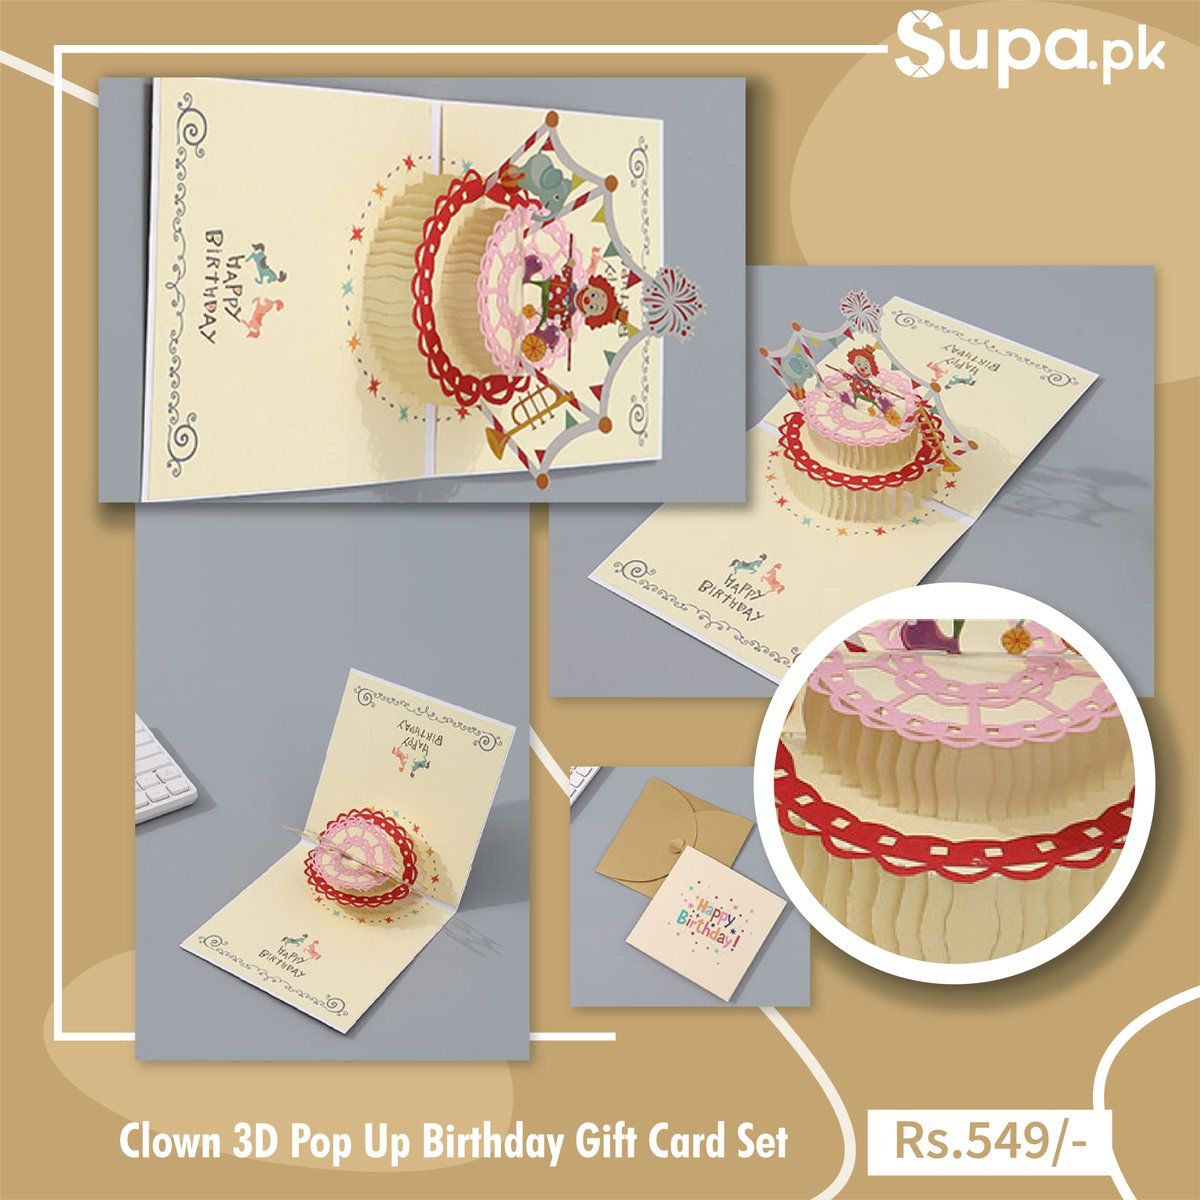 """""""Will Be Touched By Your Intention For Him/Her.""""  Order Now: https://t.co/OTyNl08jX1  #birthdaycard #birthday #cardmaking #handmadecards #handmade #greetingcards #happybirthday #cardmakinghobby #kartenbasteln #onlineshop #superiorshopping #onlineshopping #supa #supapk https://t.co/mhDMwbLglh"""